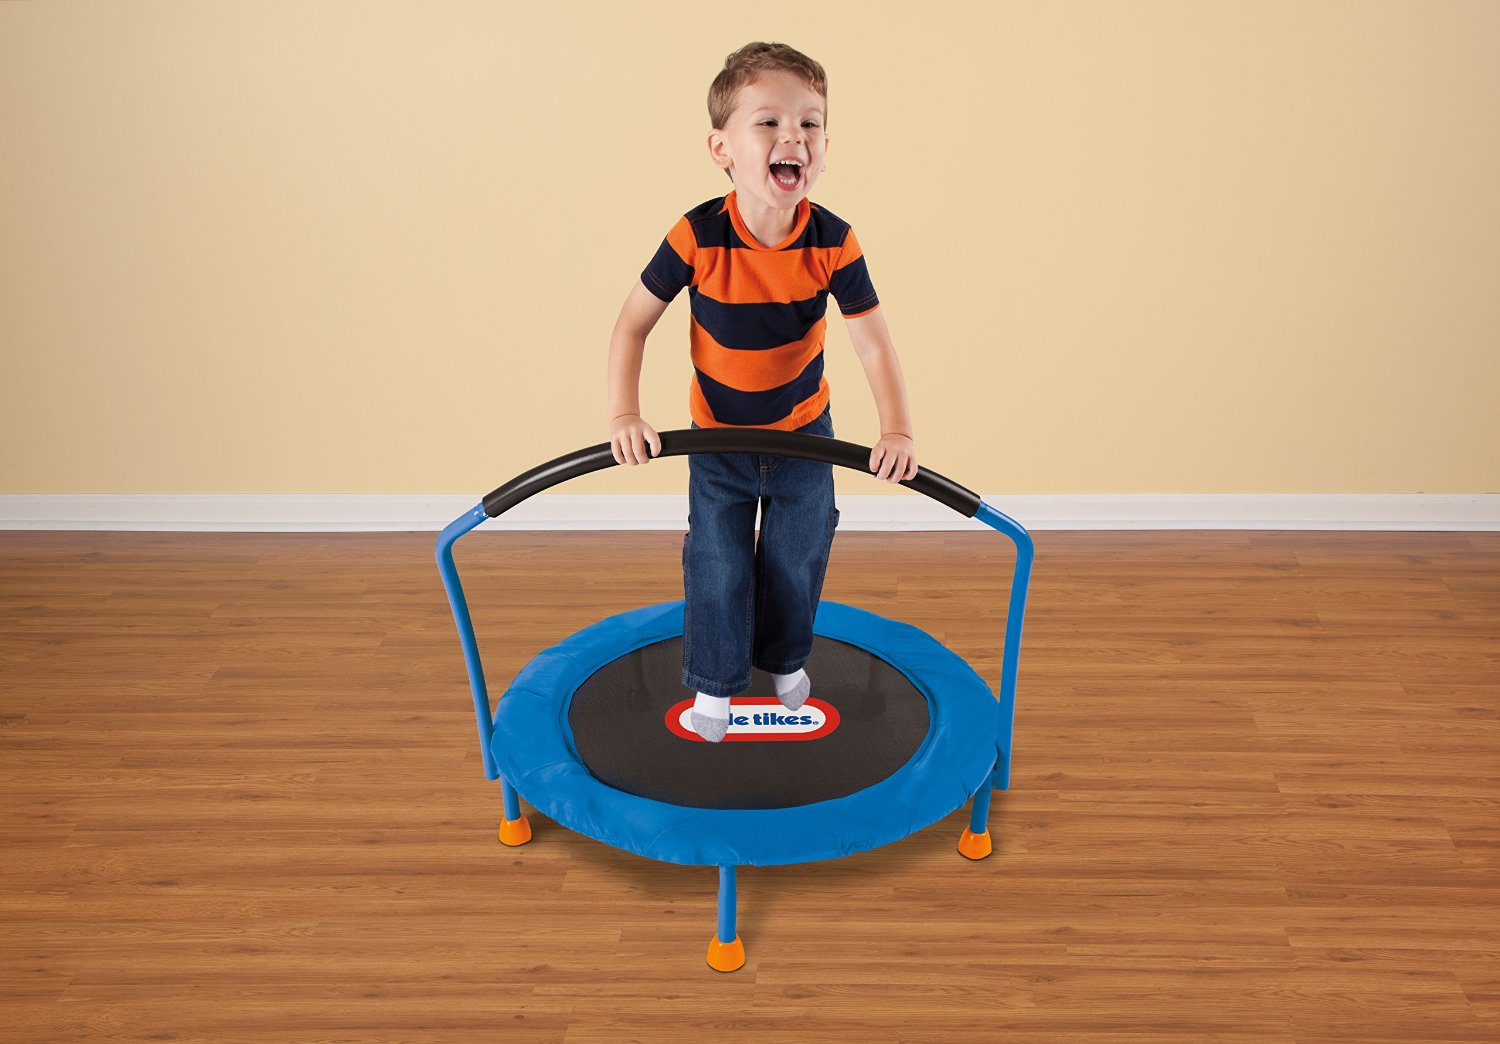 Toys For Boys 2 Years : Top toys for year old boys the absolute best